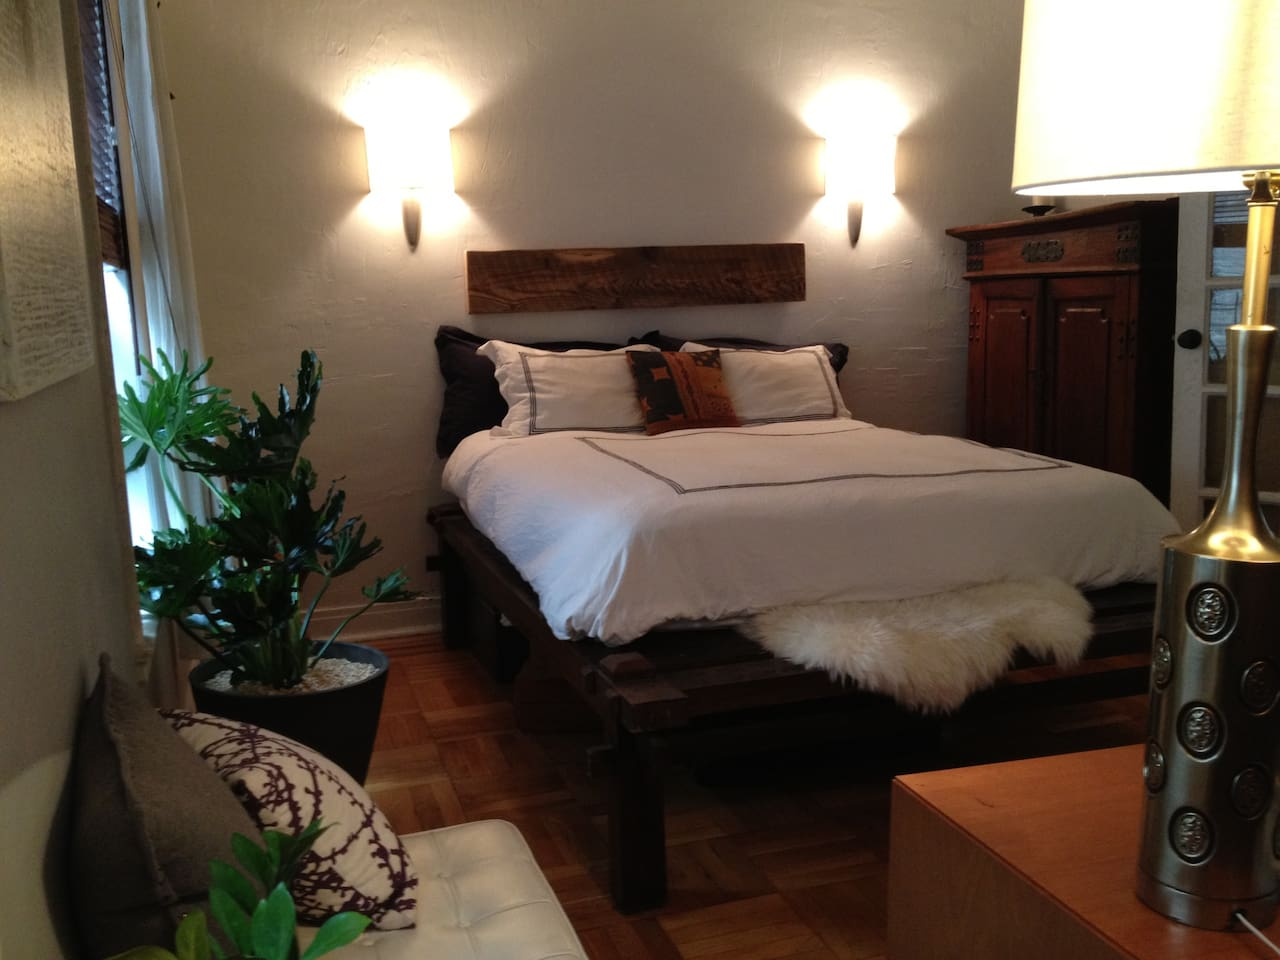 Large Bedroom with Teak queen platform bed, Teak cabinet, Cherry wood chest of drawers & Wht Barcelona Ottaman